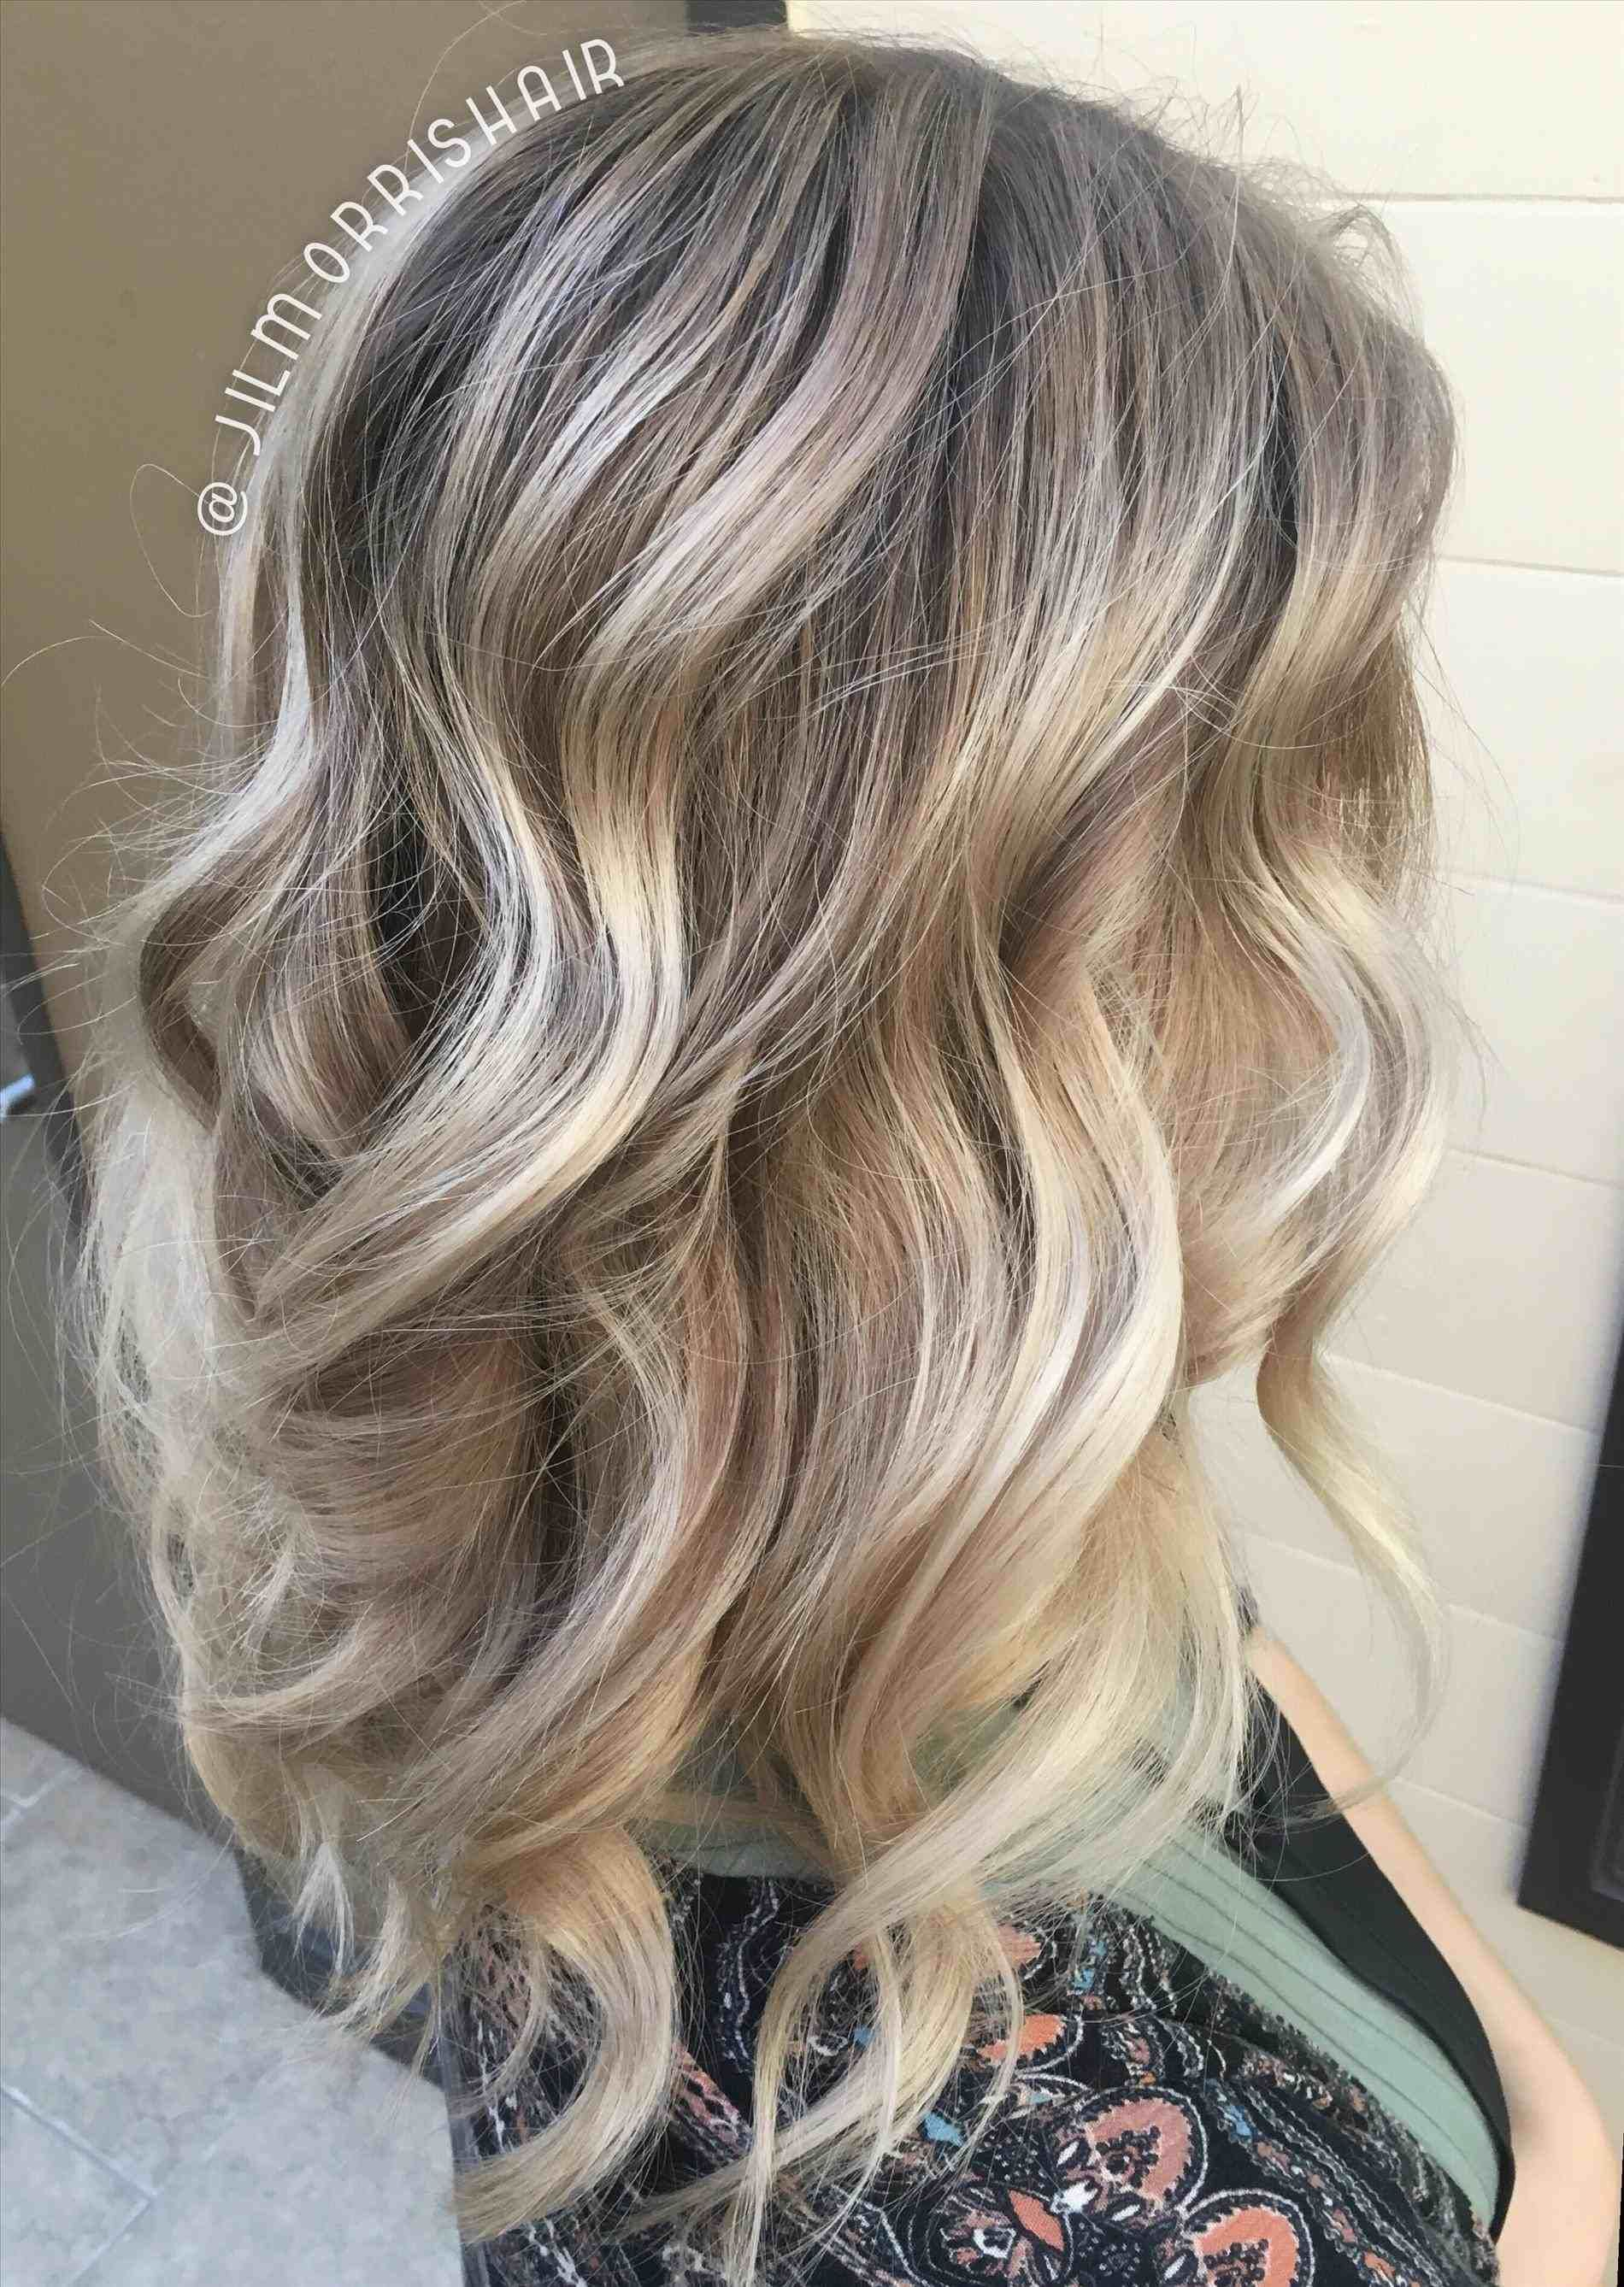 Brown Hair With Blonde Highlights At The Bottom Blonde Balayage